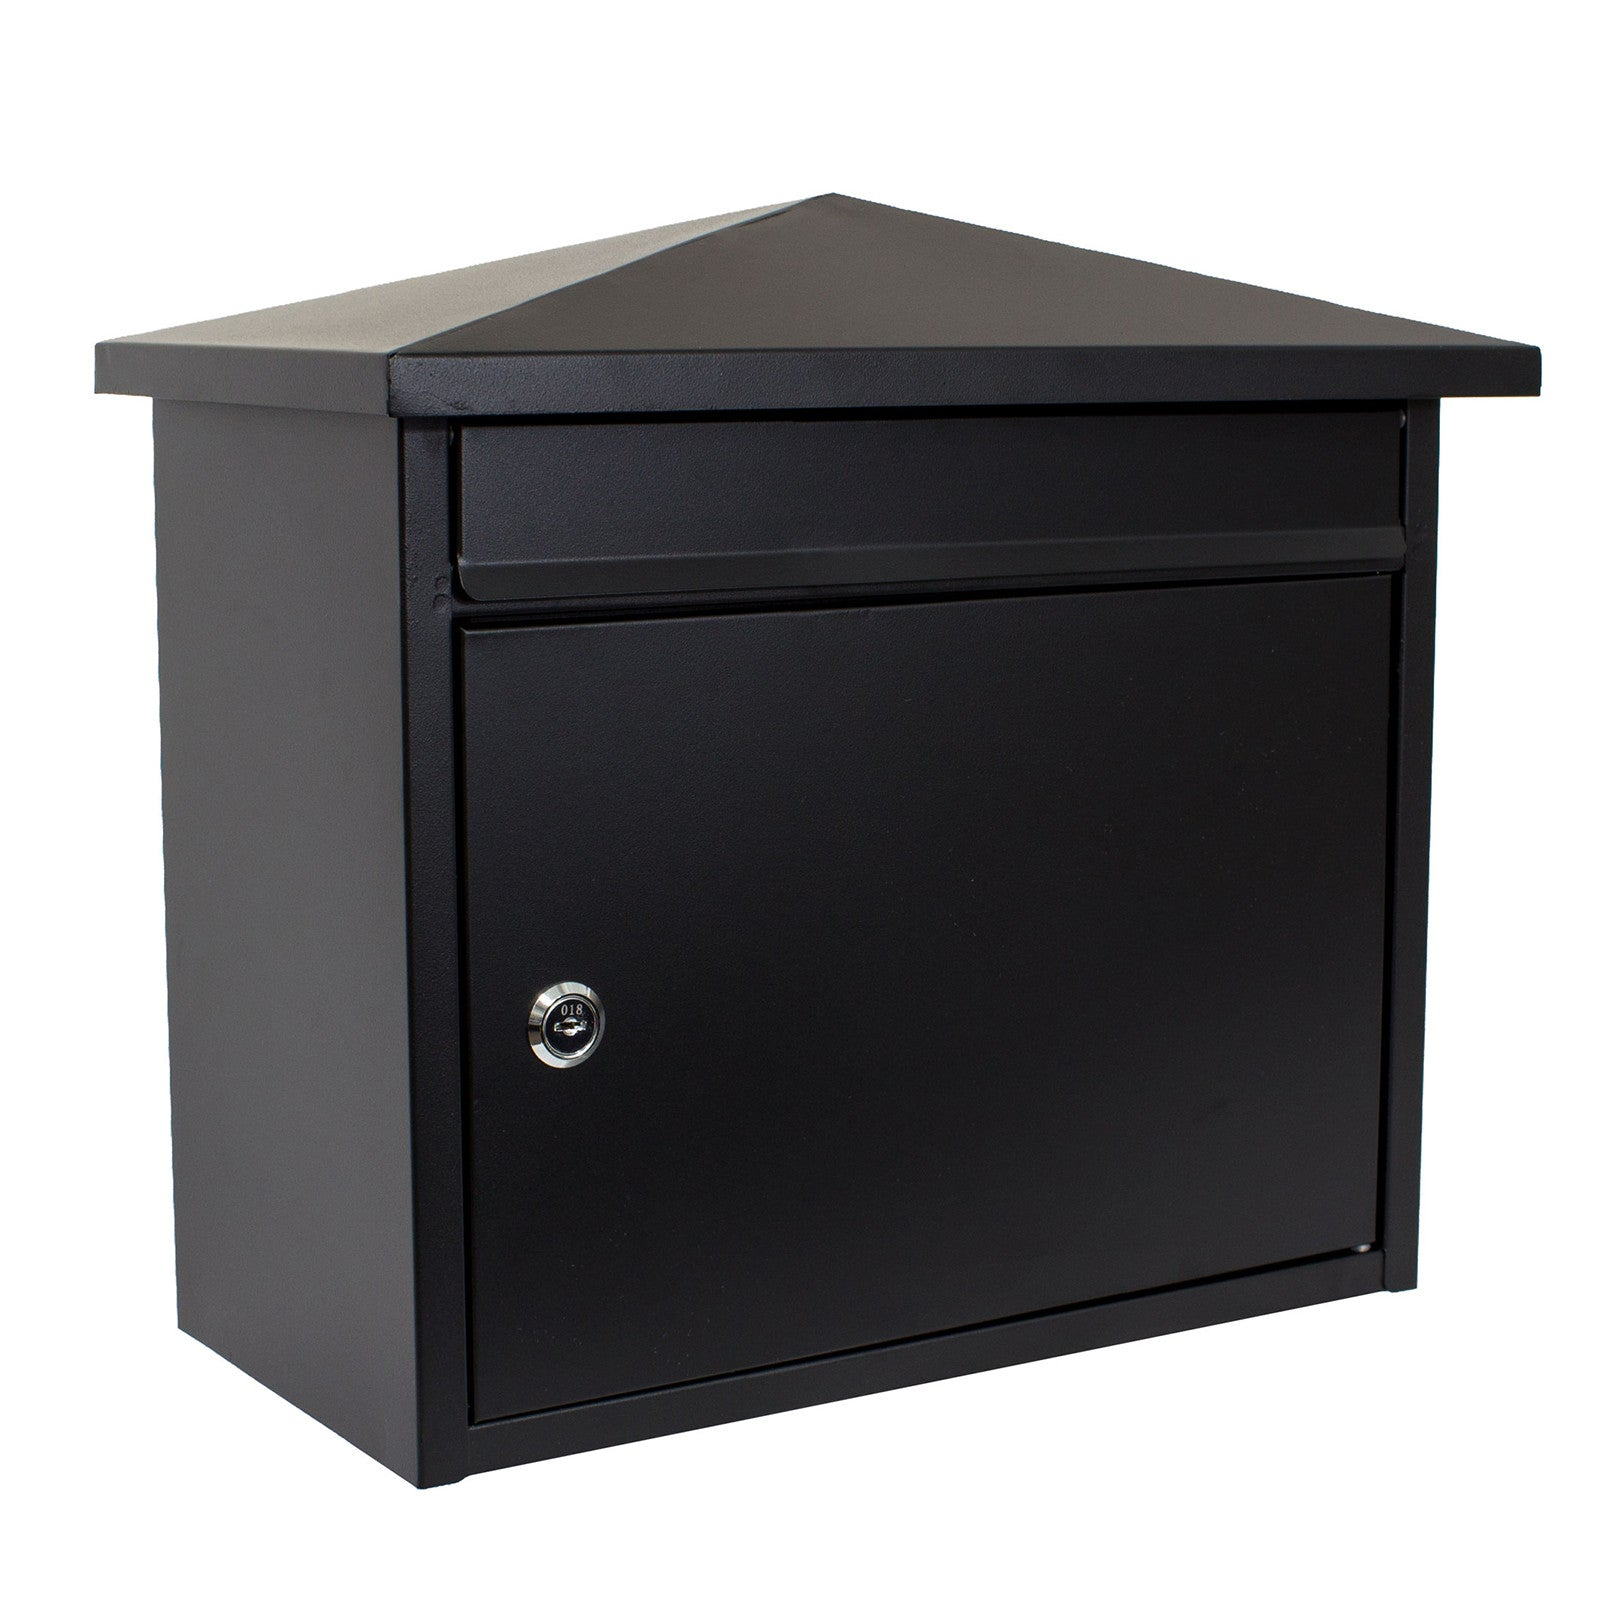 Top Qualarc Mailboxes Shop Popular Qualarc Options Prime Mailboxes